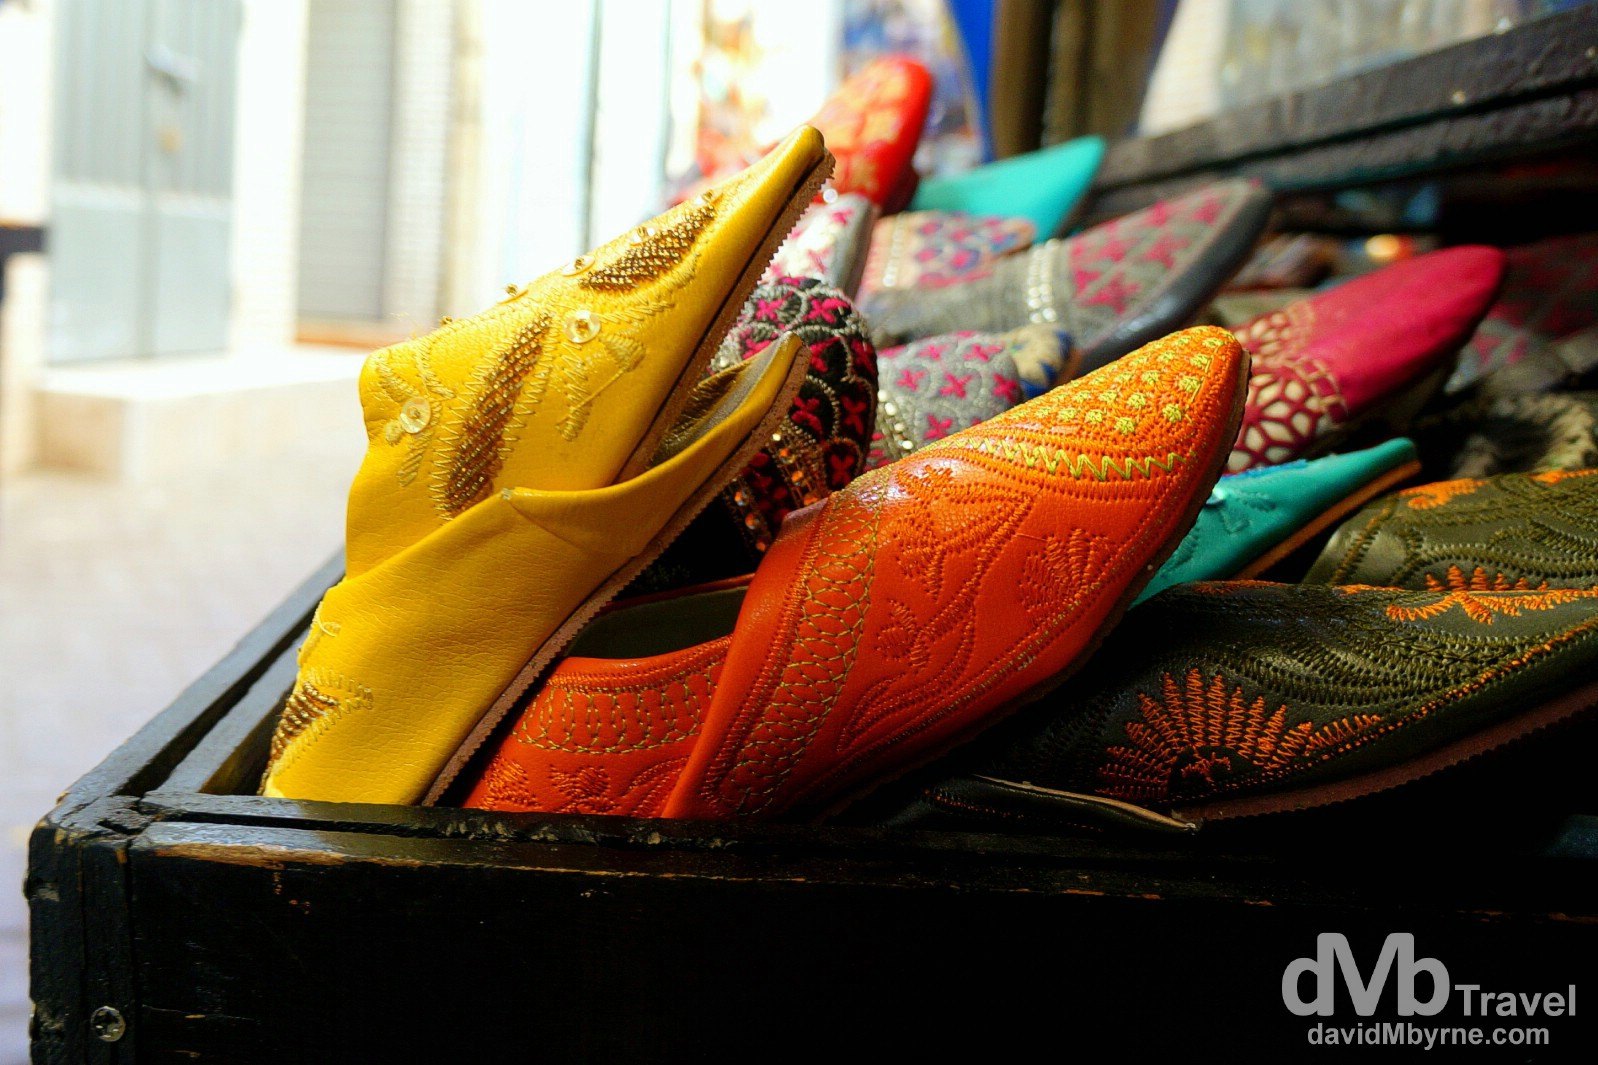 Babouche, Moroccan slippers, on sale in a lane of the Medina in Tangier, Morocco. June 3rd, 2014.